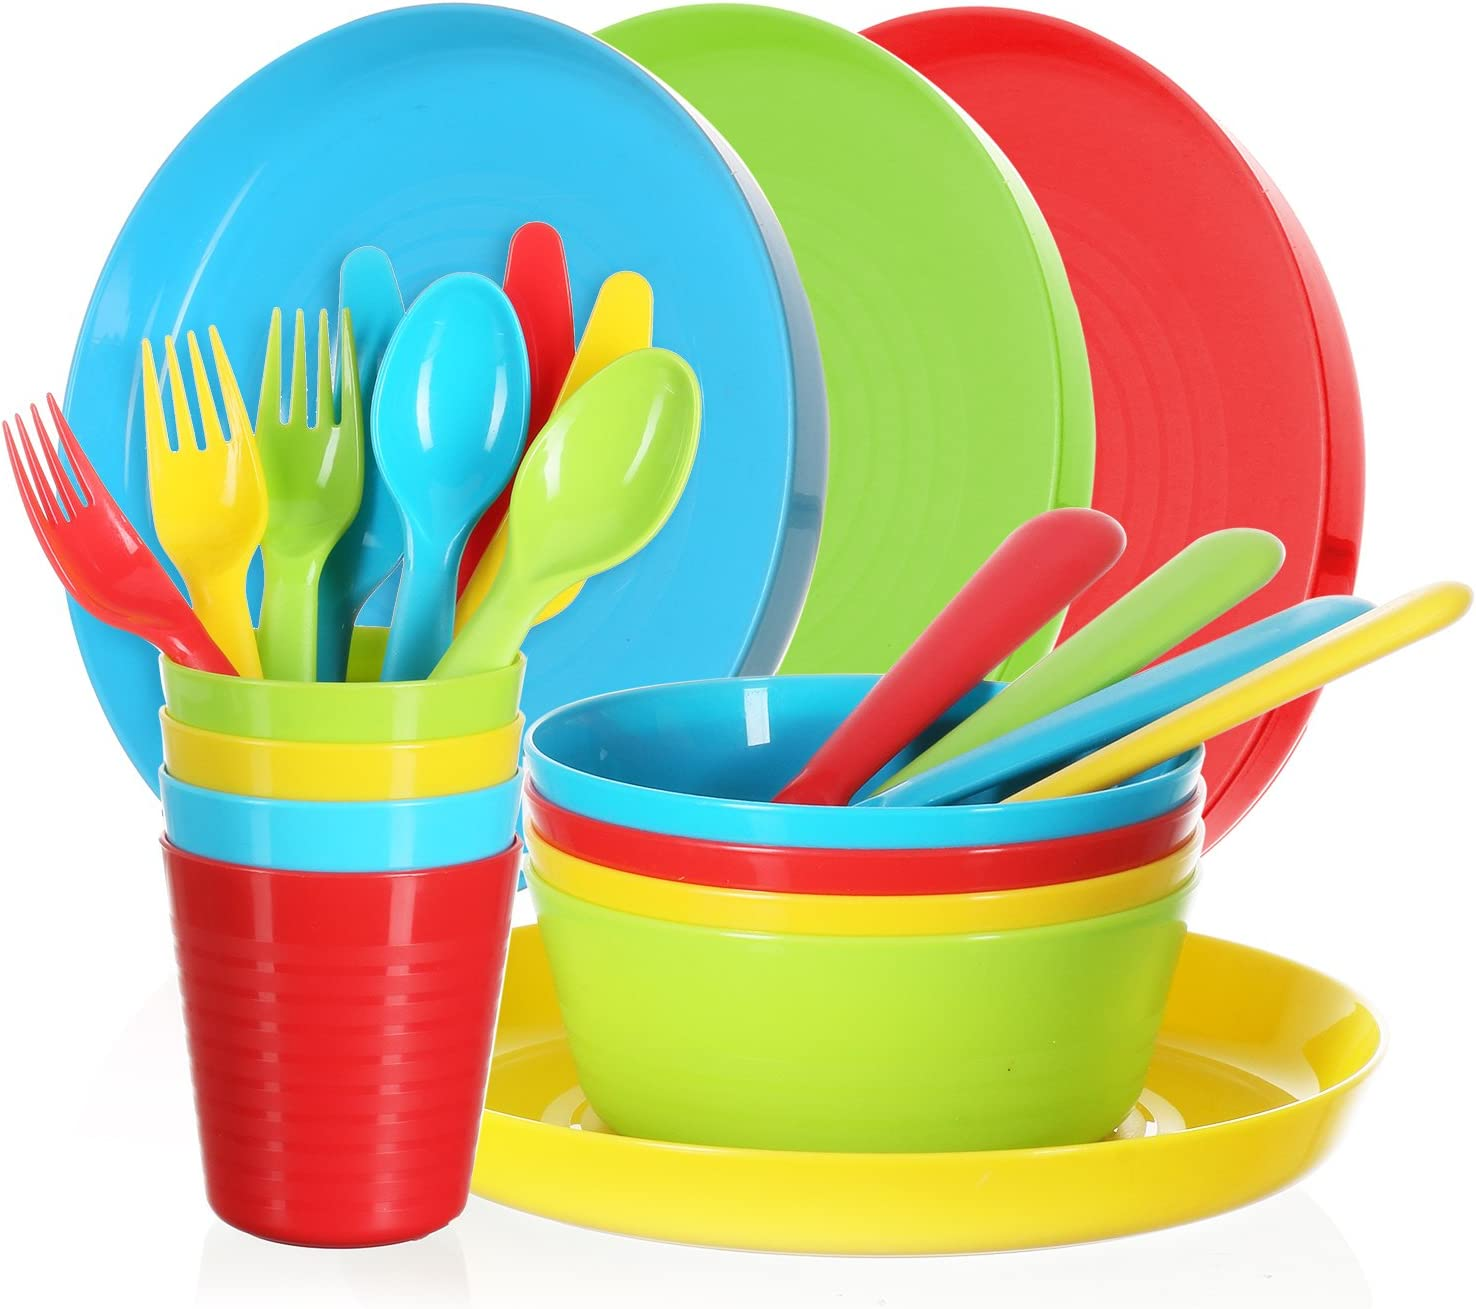 Dishwasher Safe and Microwaveable Cuddly Hippo Kids Plastic Dinnerware Set of 18 Multi Color Flatware BPA-Free - Reusable Spoons, Forks and Knives